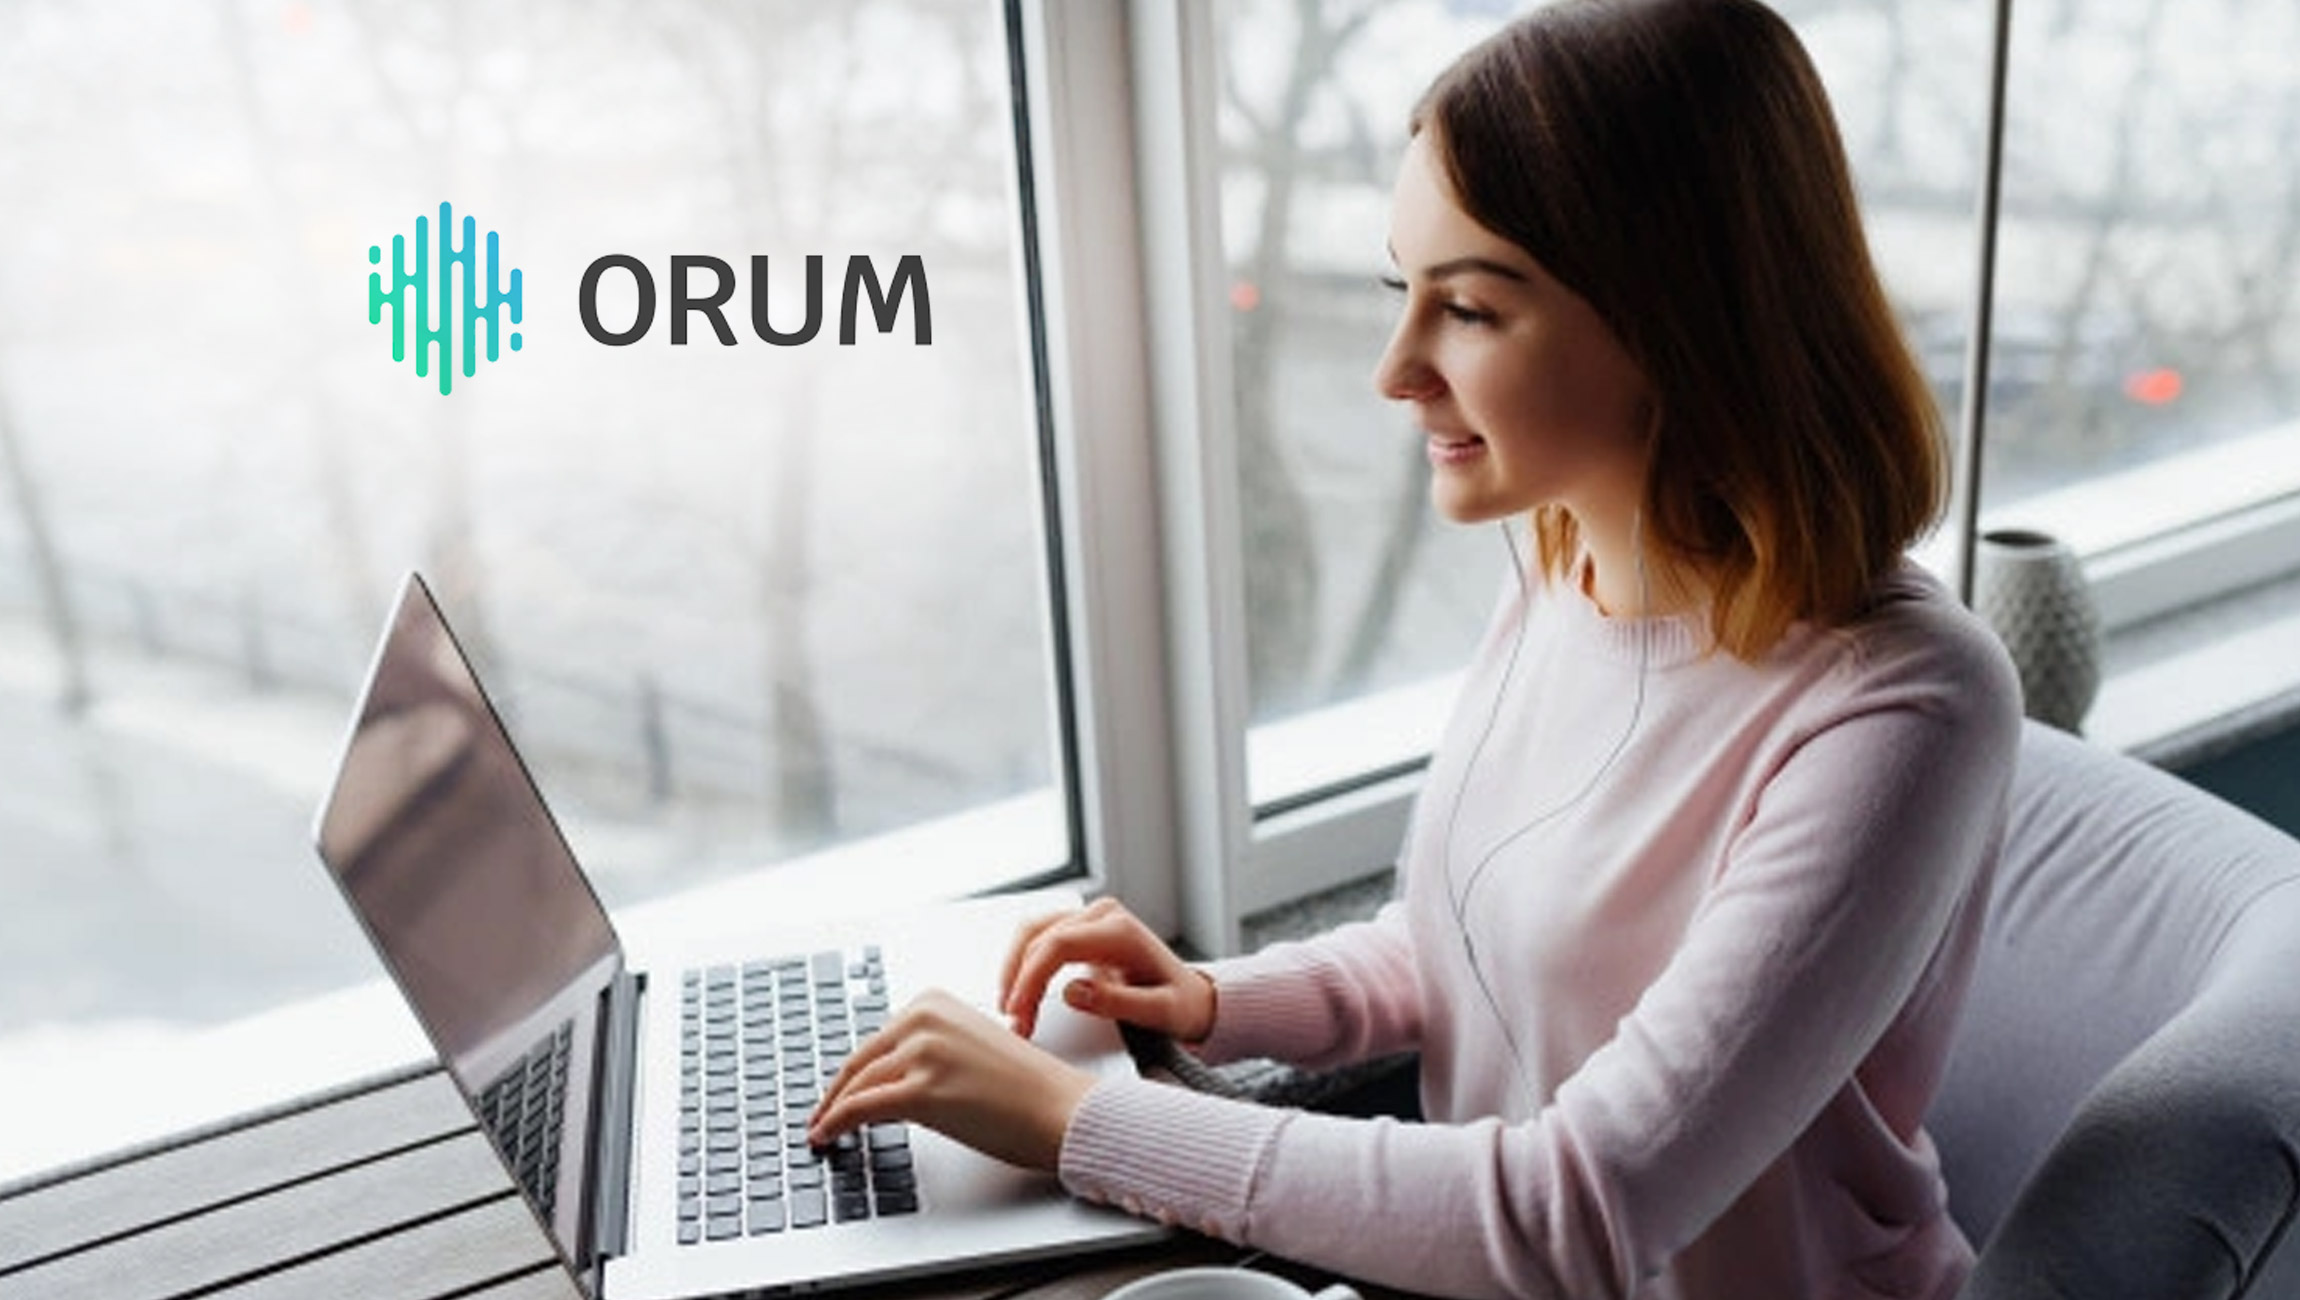 Orum CEO, Jason Dorfman, And VP of Sales, Colin Specter, Host SDR And ISR Online Career Mentorship Series